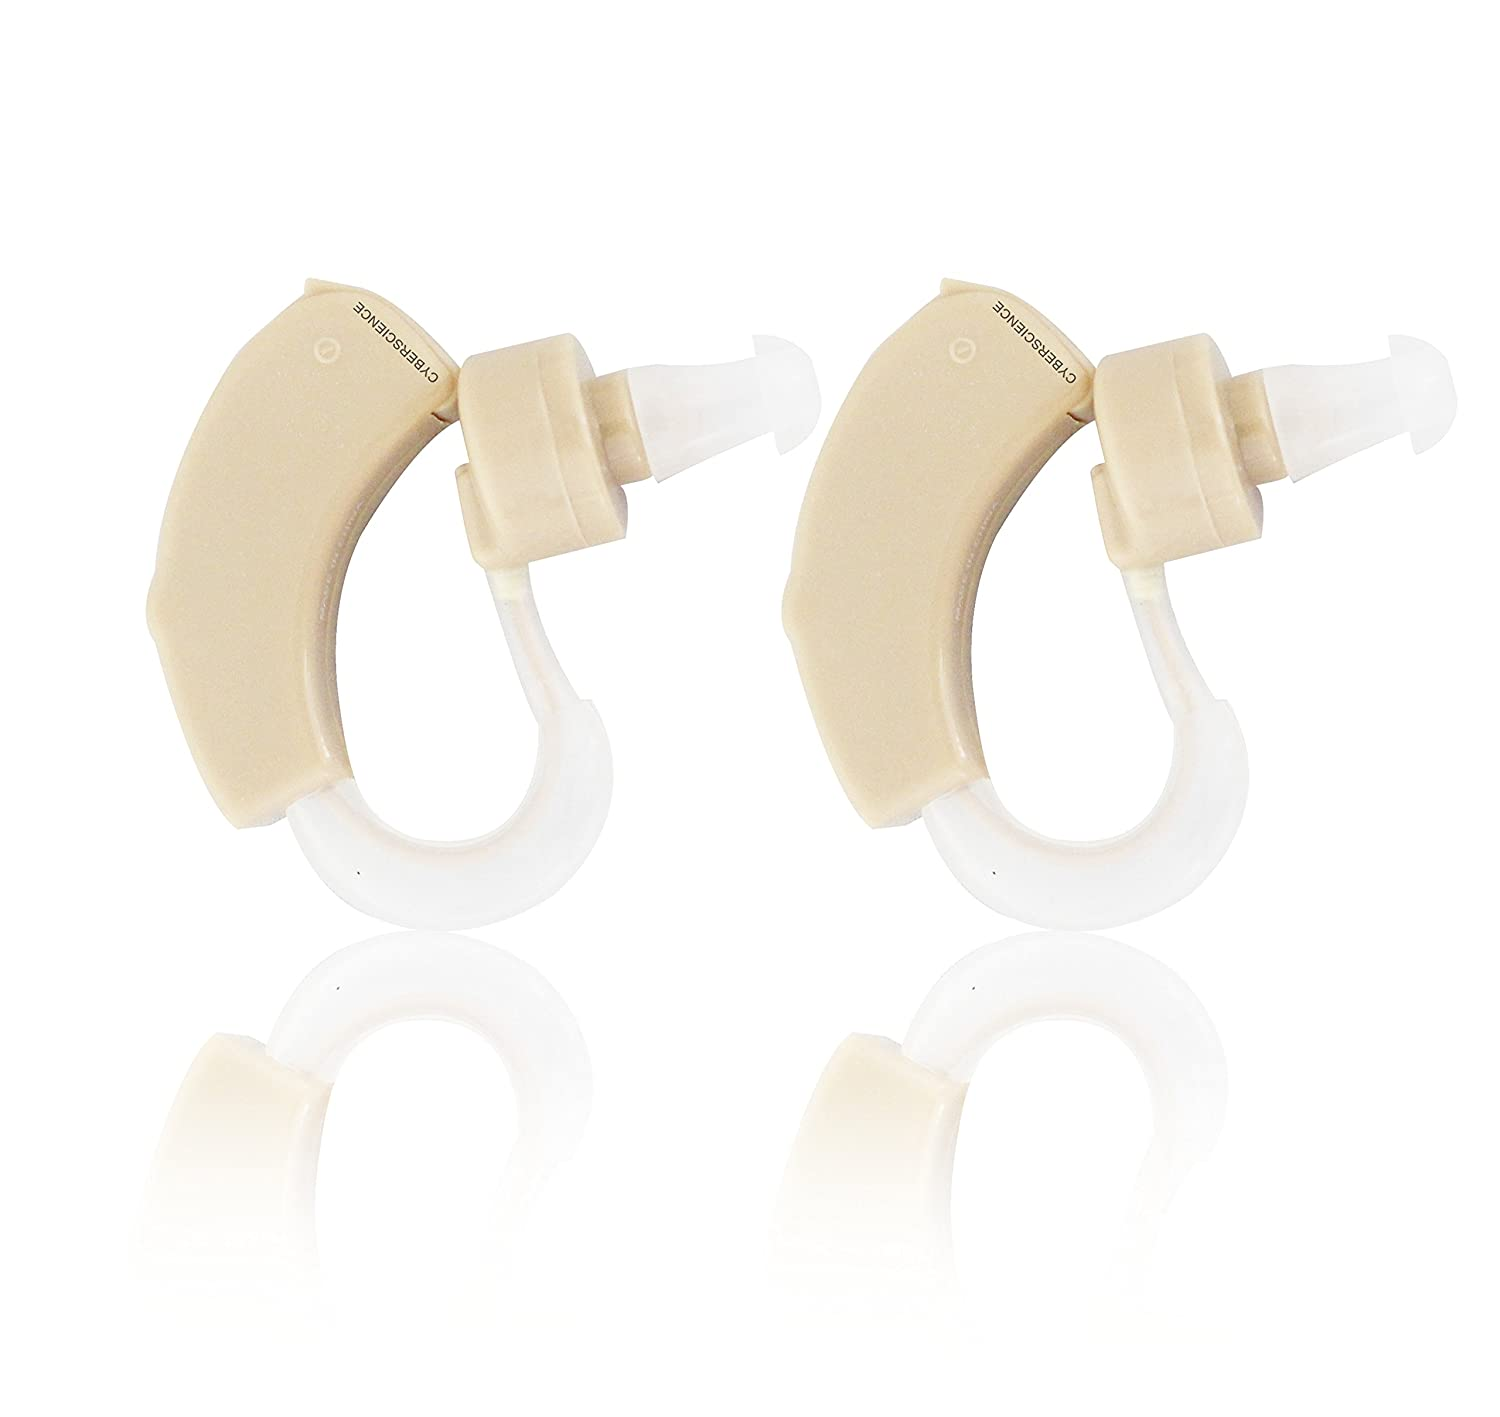 Hearing Amplifiers Set Of 2 Psap Behind The Ear Living Aids Accessories Personal Sound Amplification Device Health Care